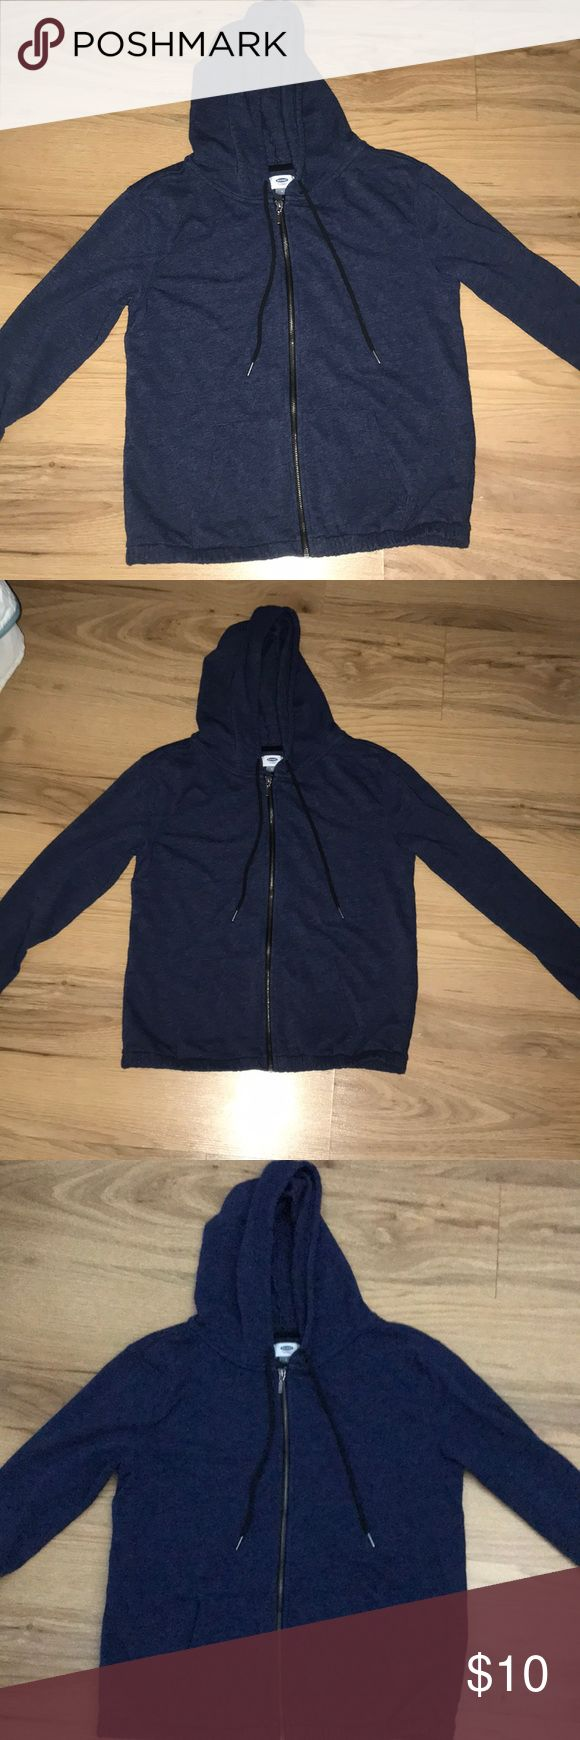 Old navy zip up hoodie size small Old navy zip up hoodie size small Old Navy Sweaters